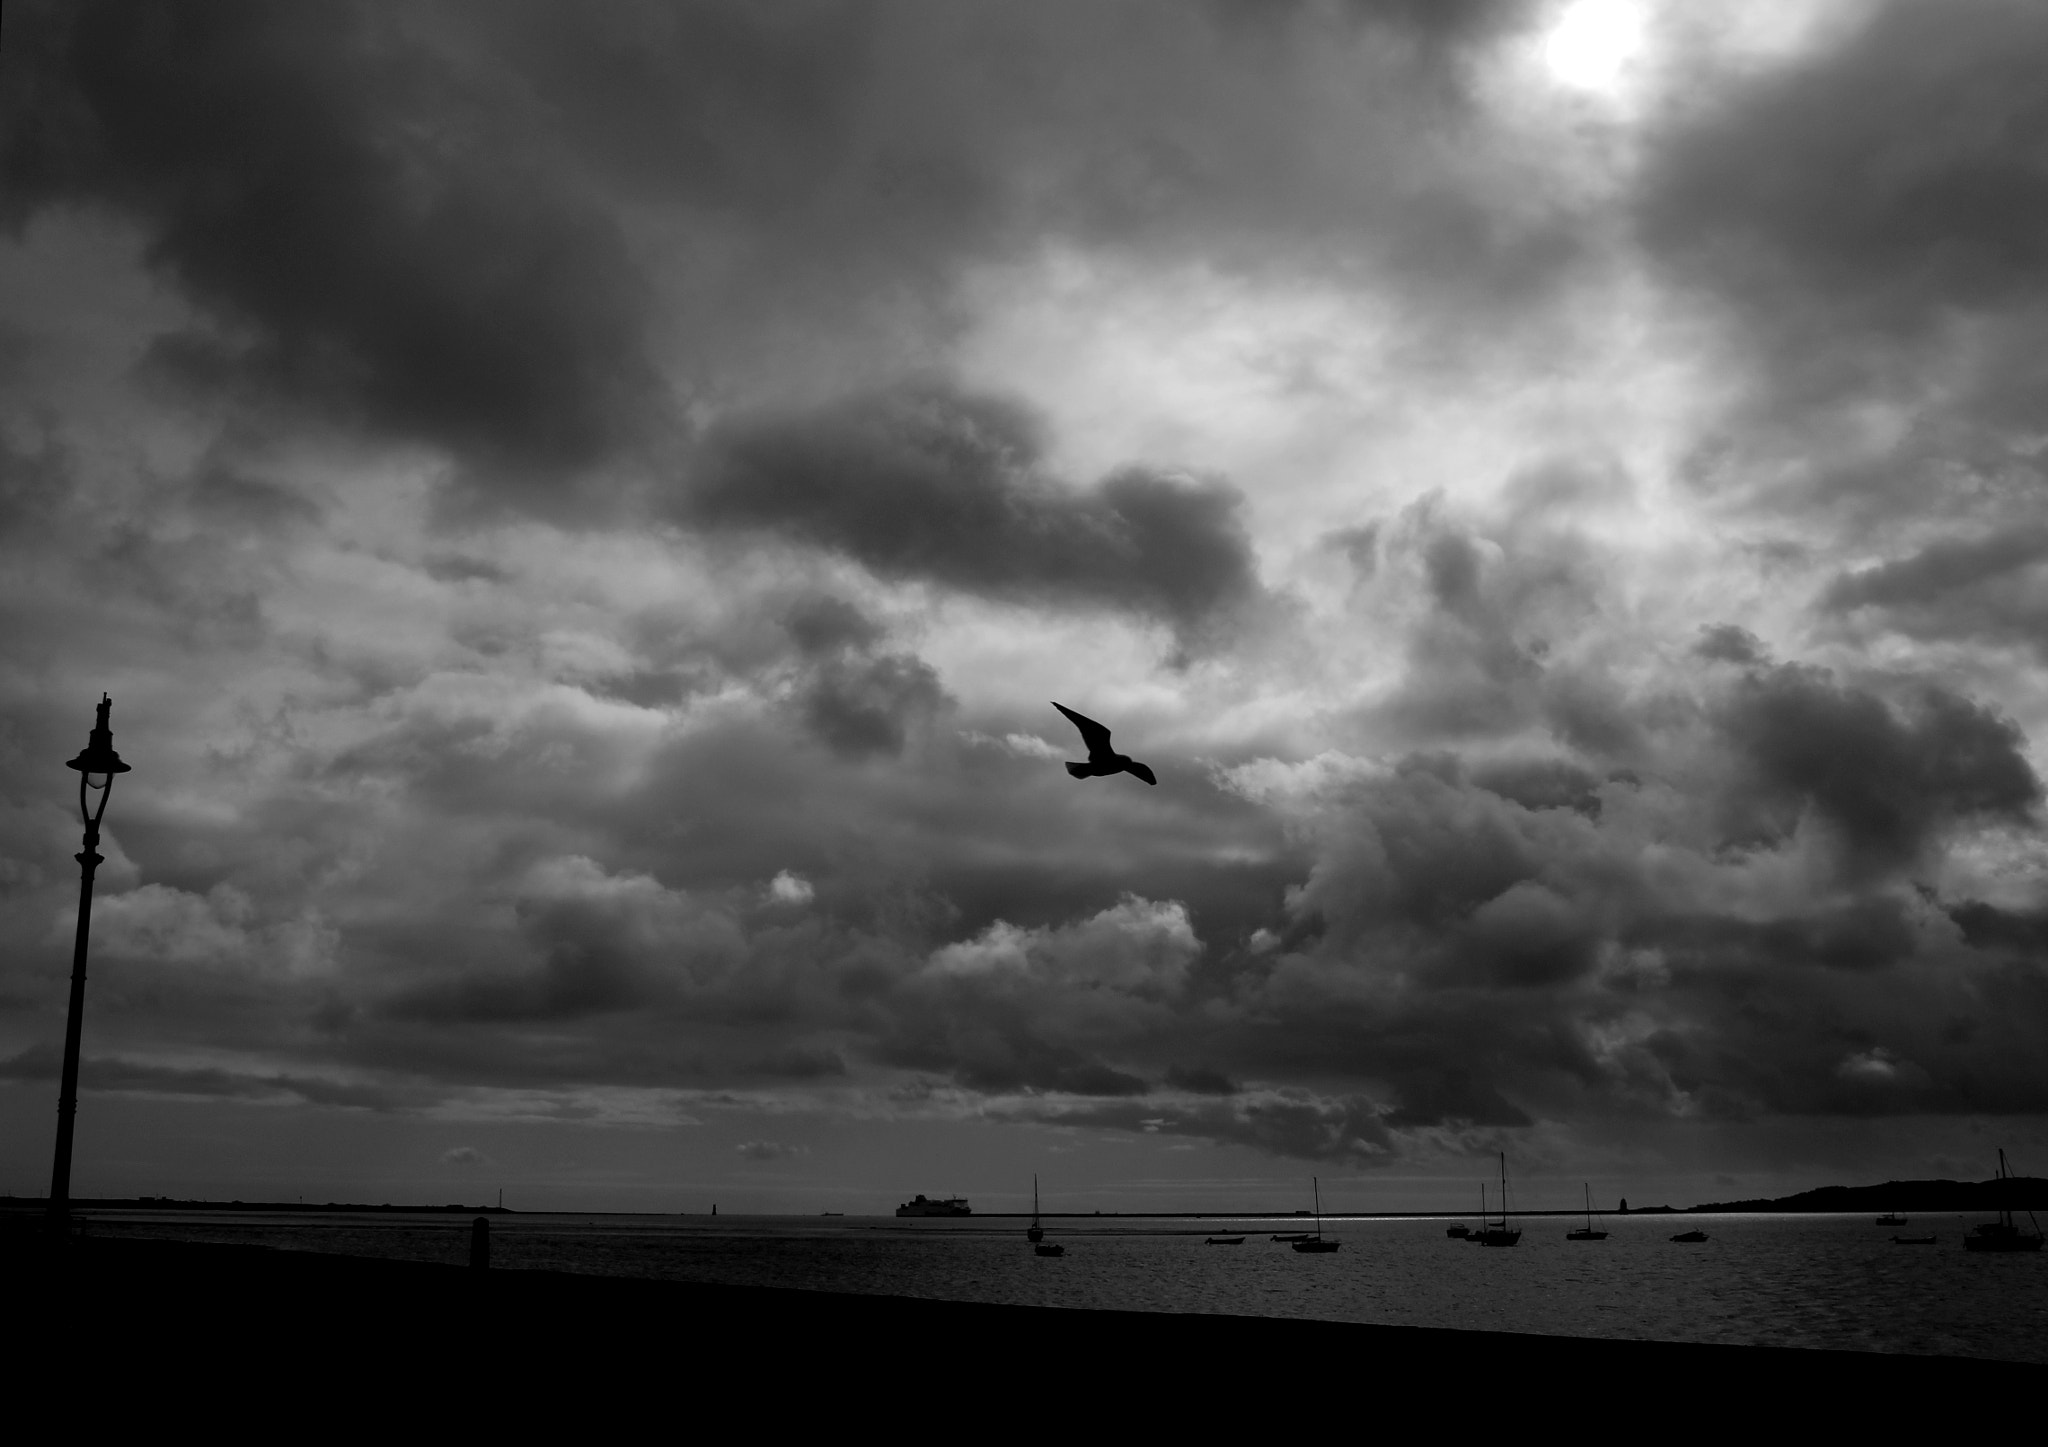 Photograph Stormy Flight by Peter Murphy on 500px